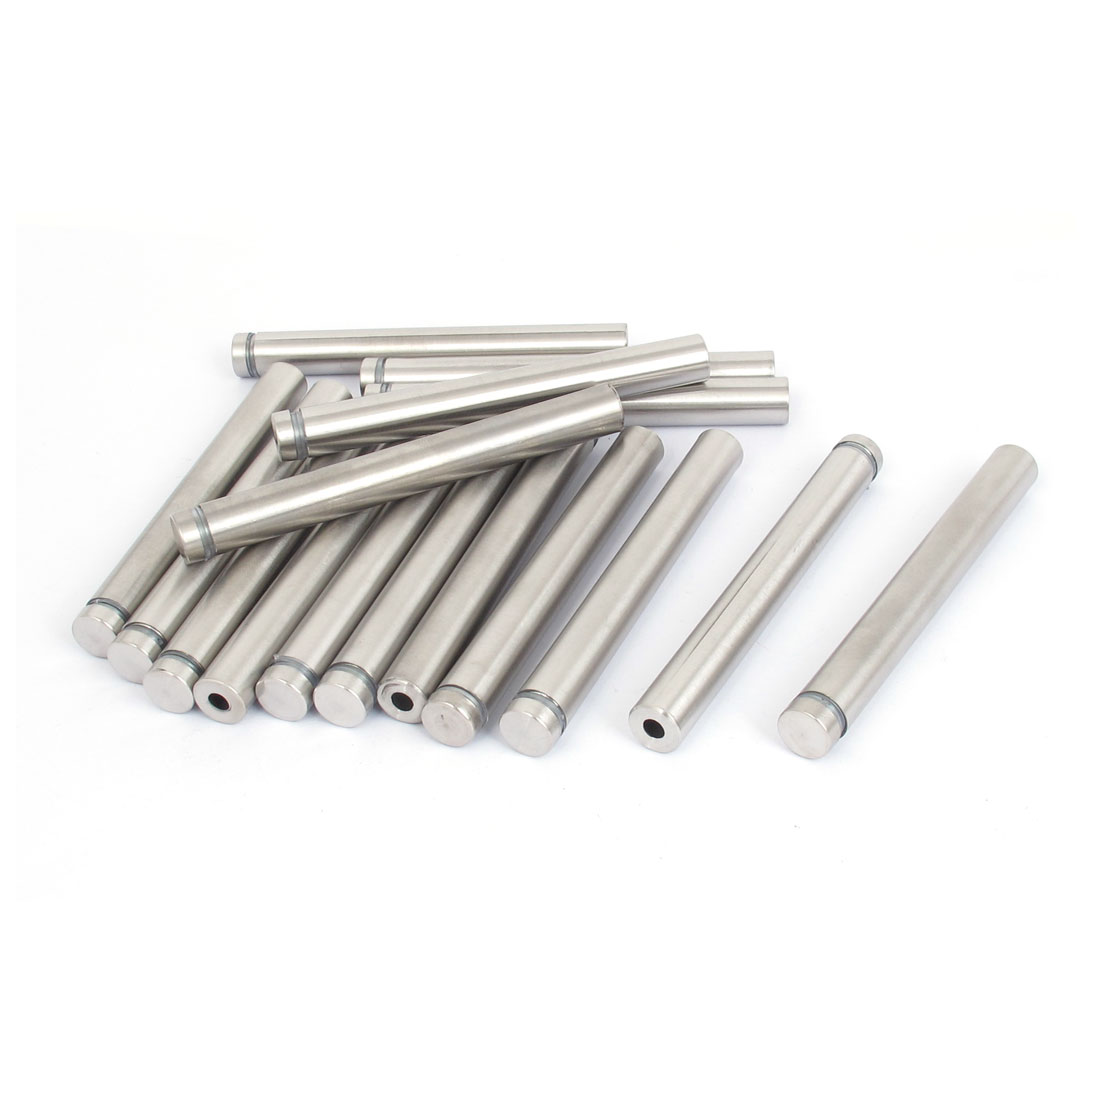 12mm x 100mm Stainless Steel Advertising Frameless Glass Standoff Pin 16pcs